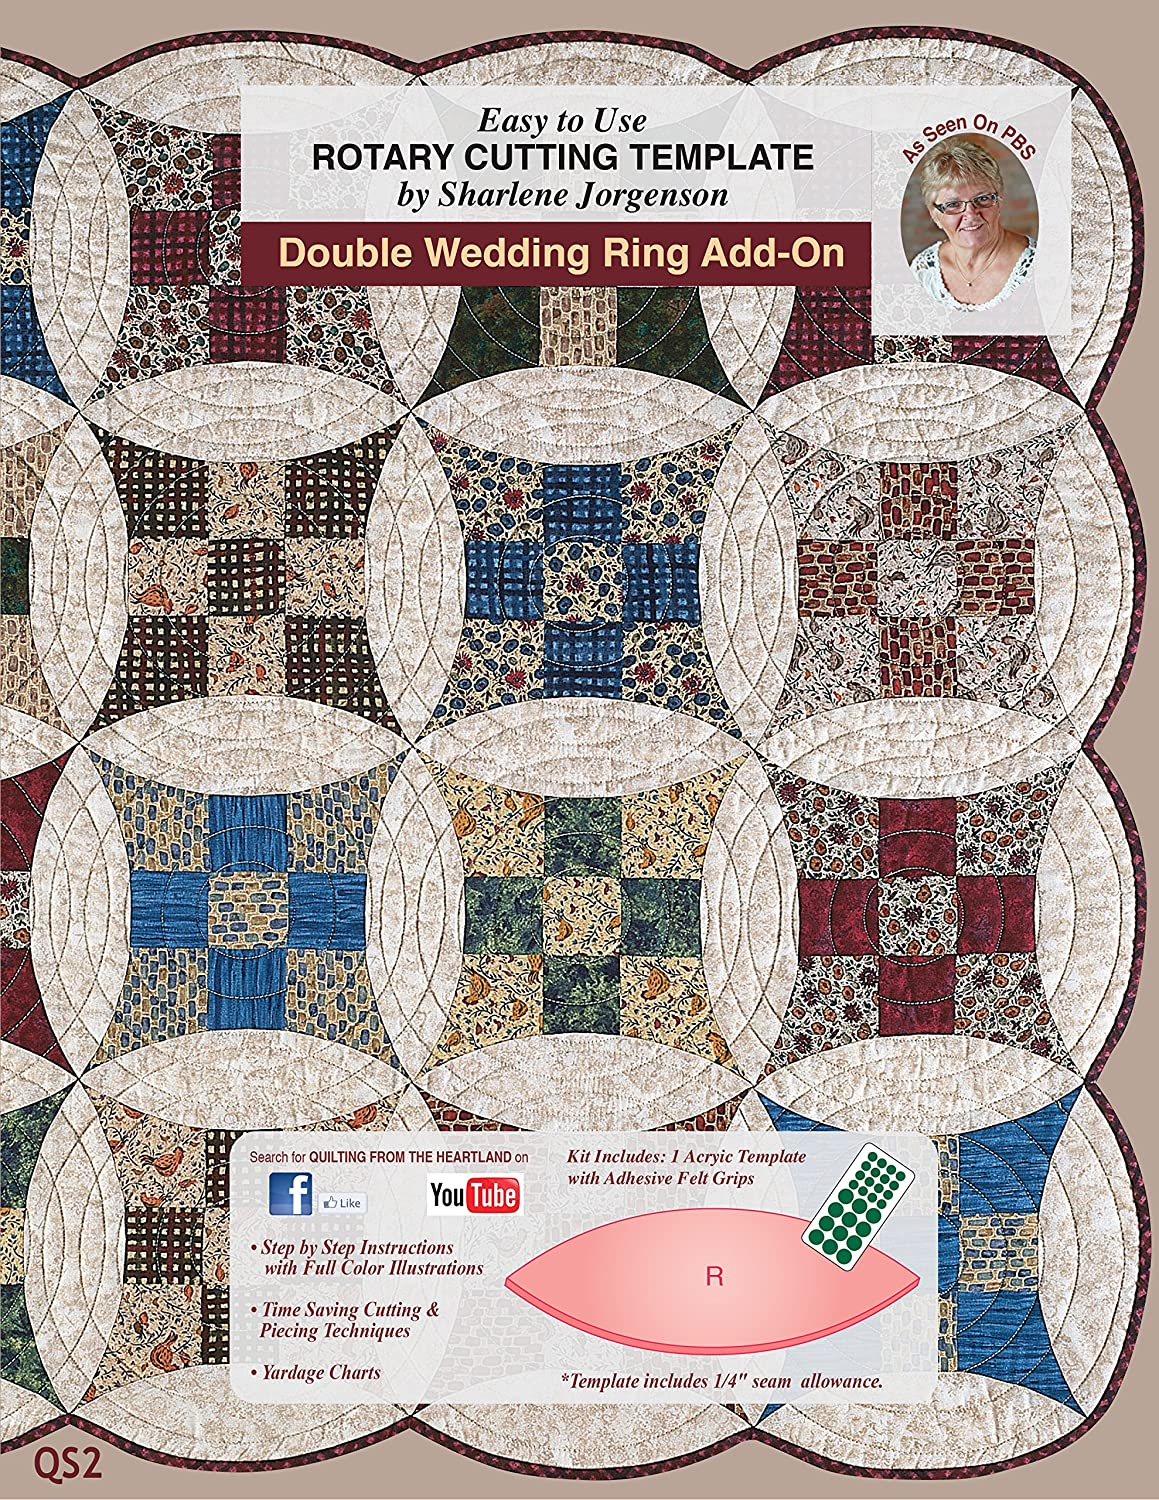 Amazon.com: Add On to the Double Wedding Ring Template by Sharlene ... : quilting from the heartland - Adamdwight.com